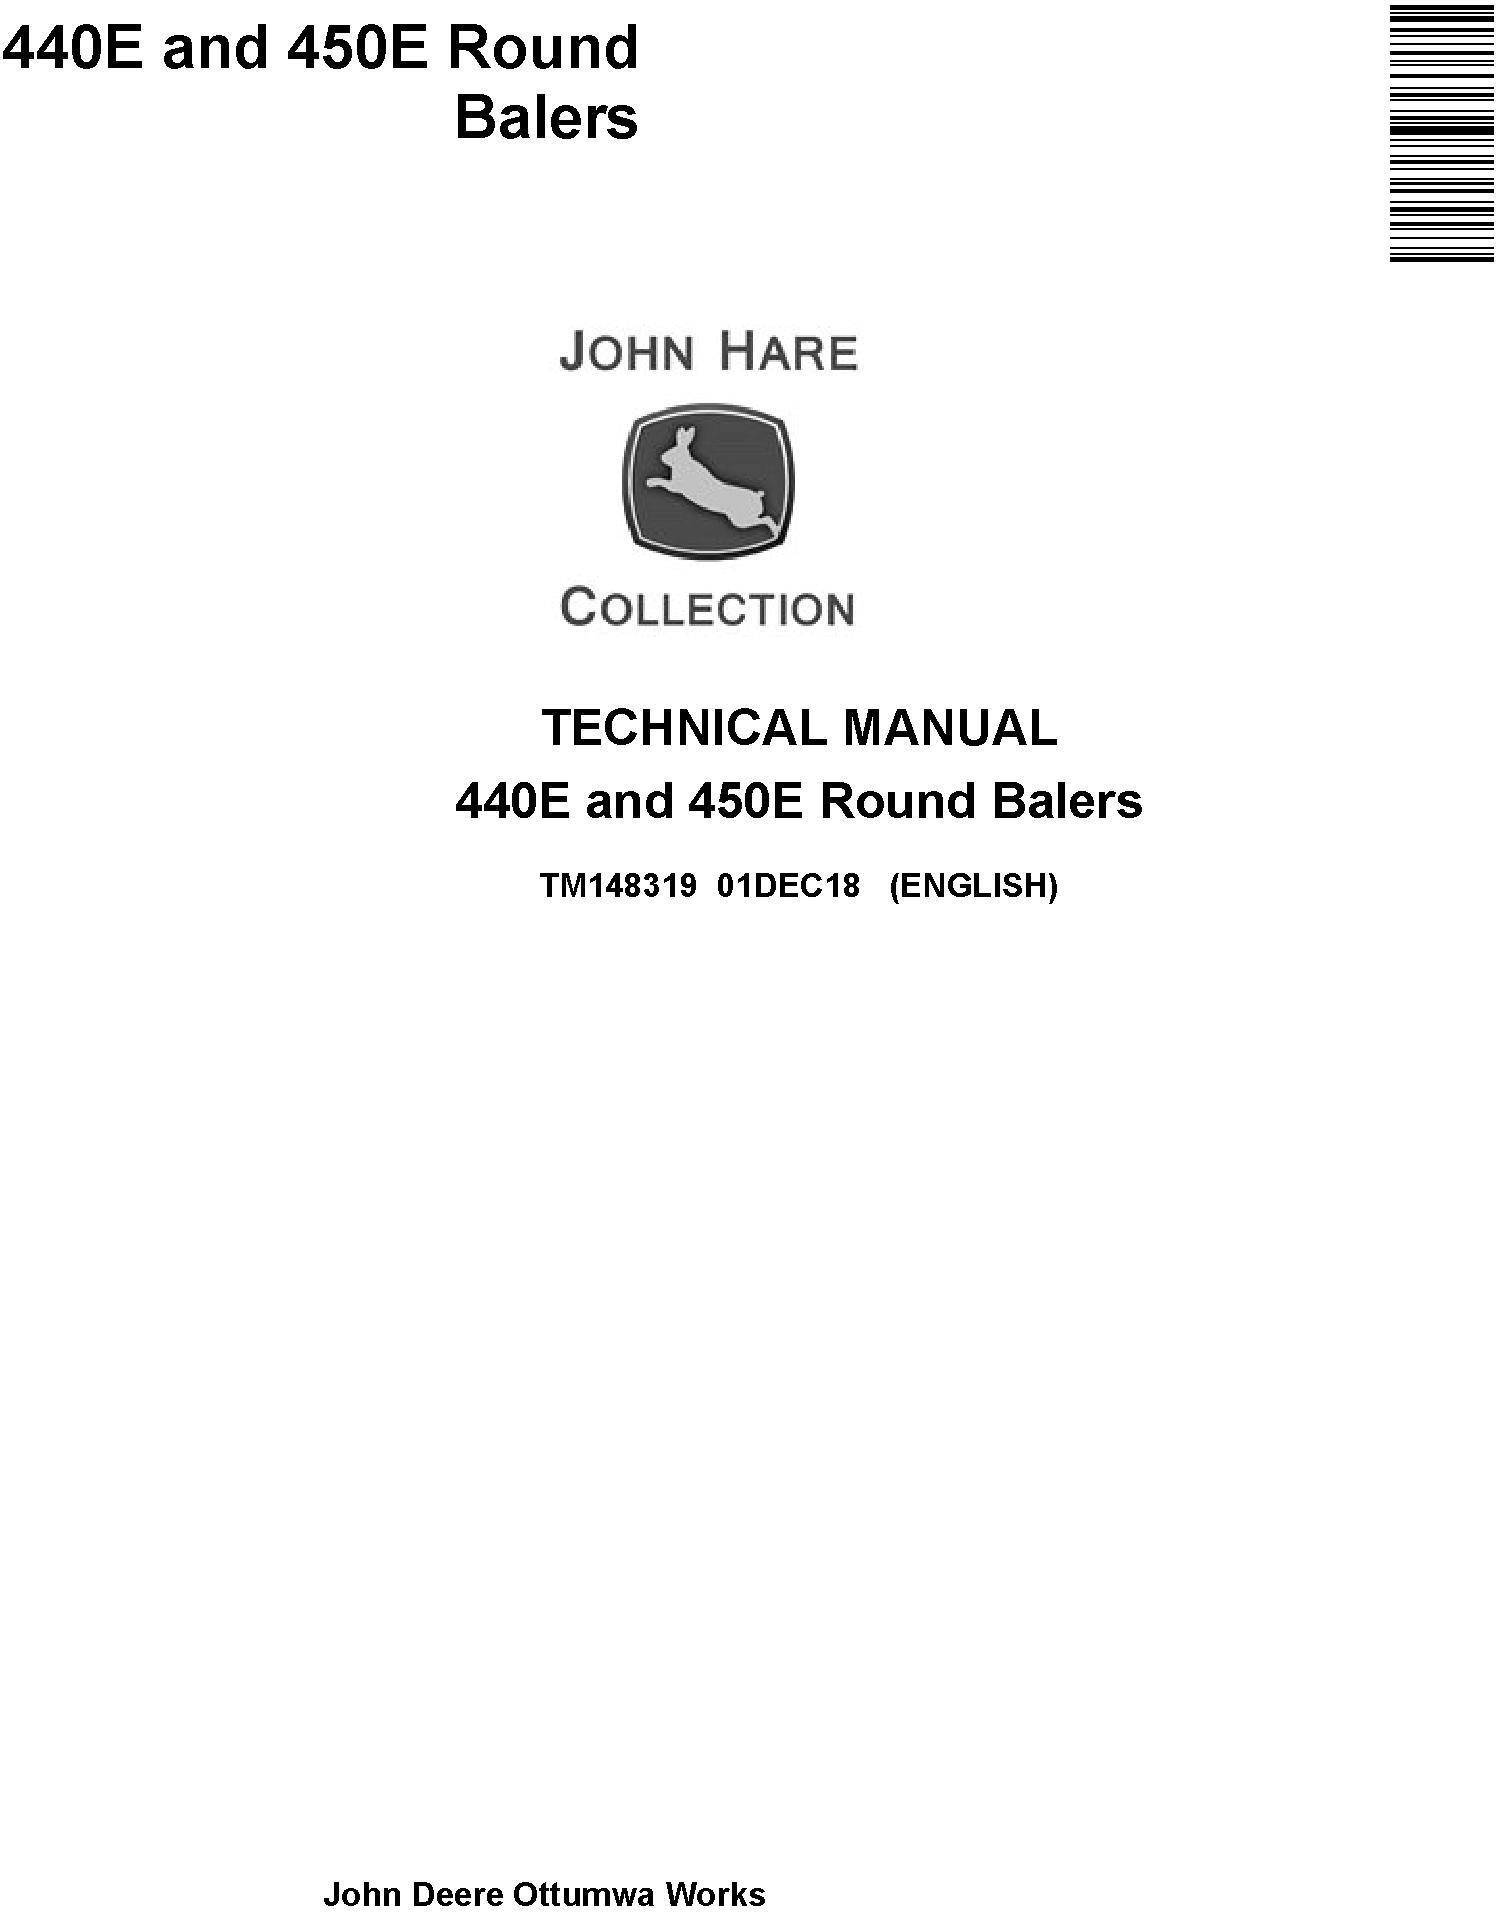 John Deere 440E and 450E Round Balers Technical Service Manual (TM148319) - 19247